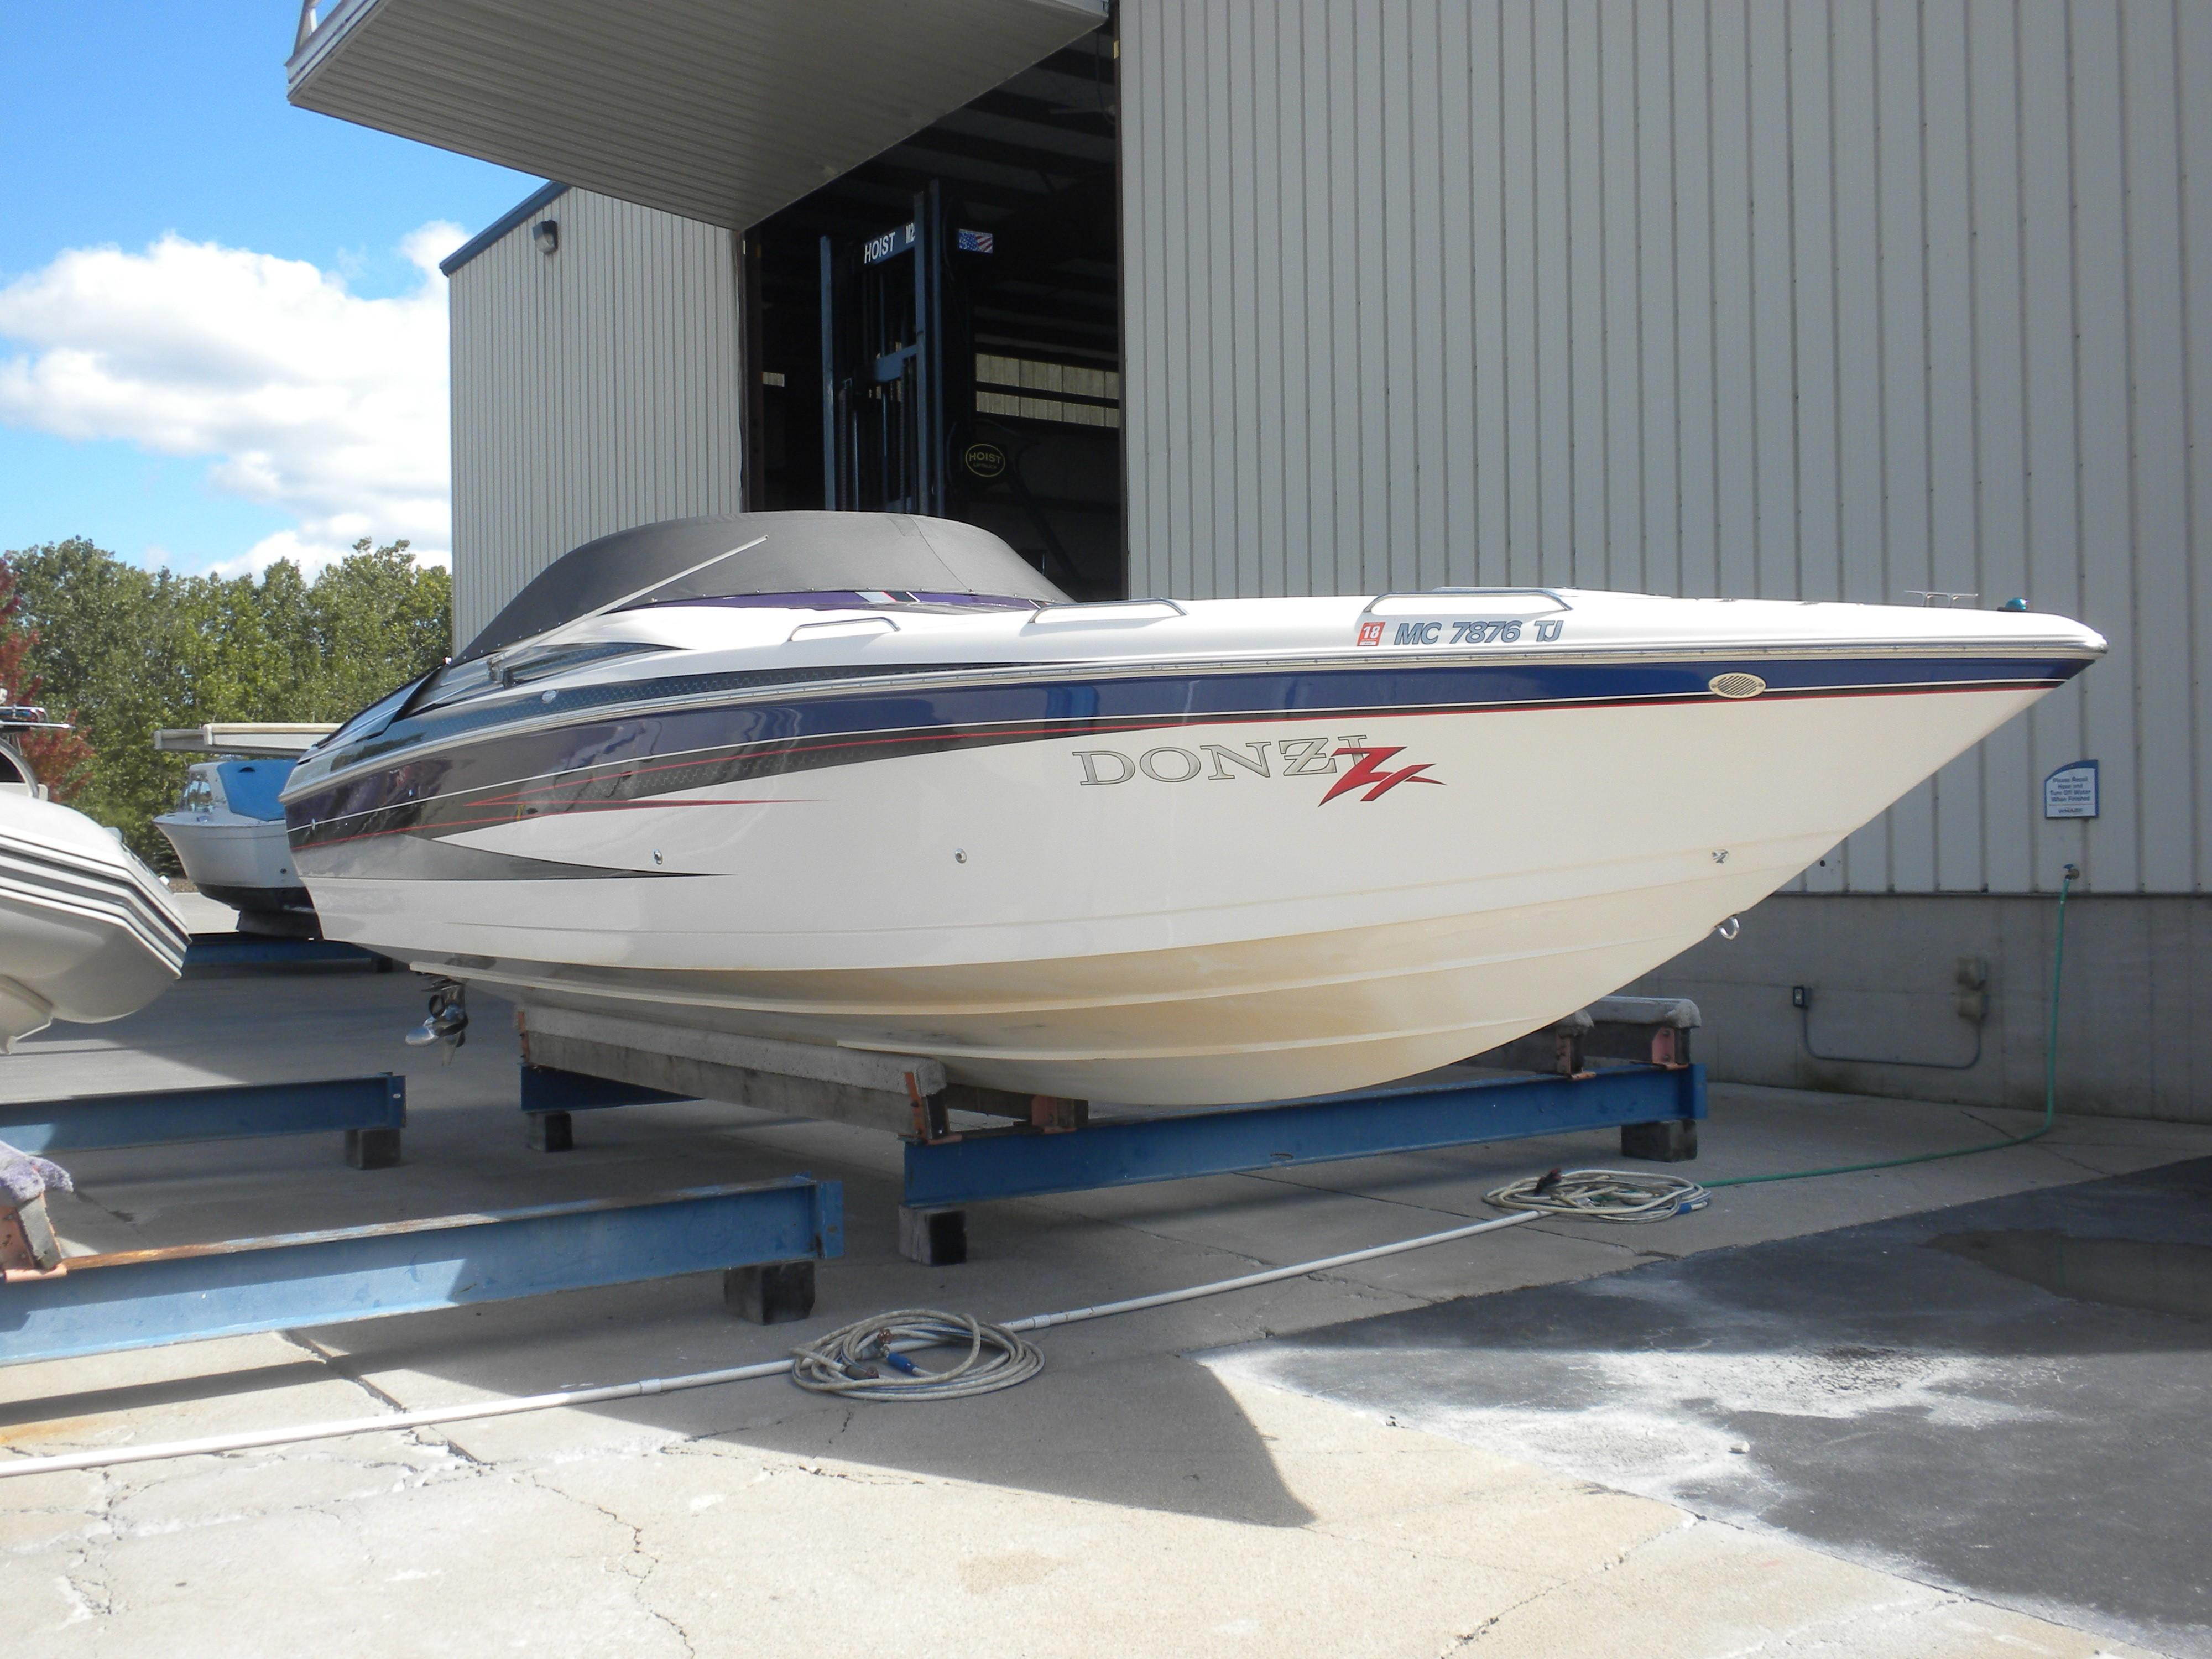 Donzi | New and Used Boats for Sale in Michigan